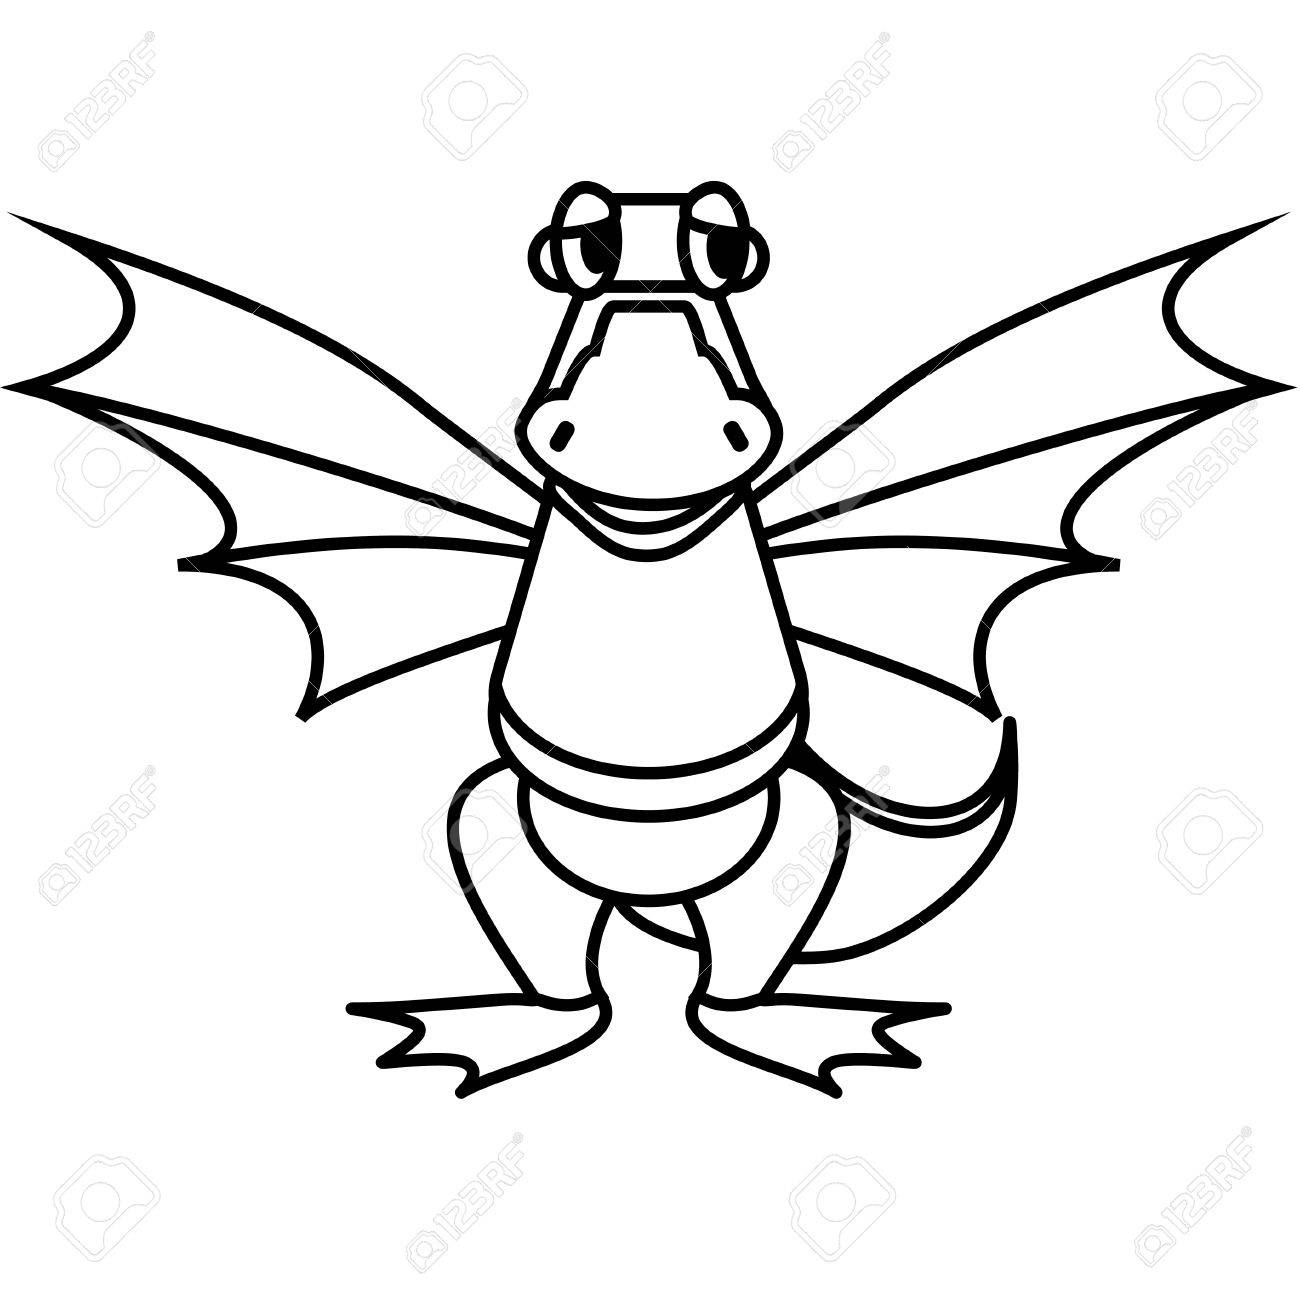 1300x1289 Simple Line Drawing. Kind Dragon Royalty Free Cliparts, Vectors